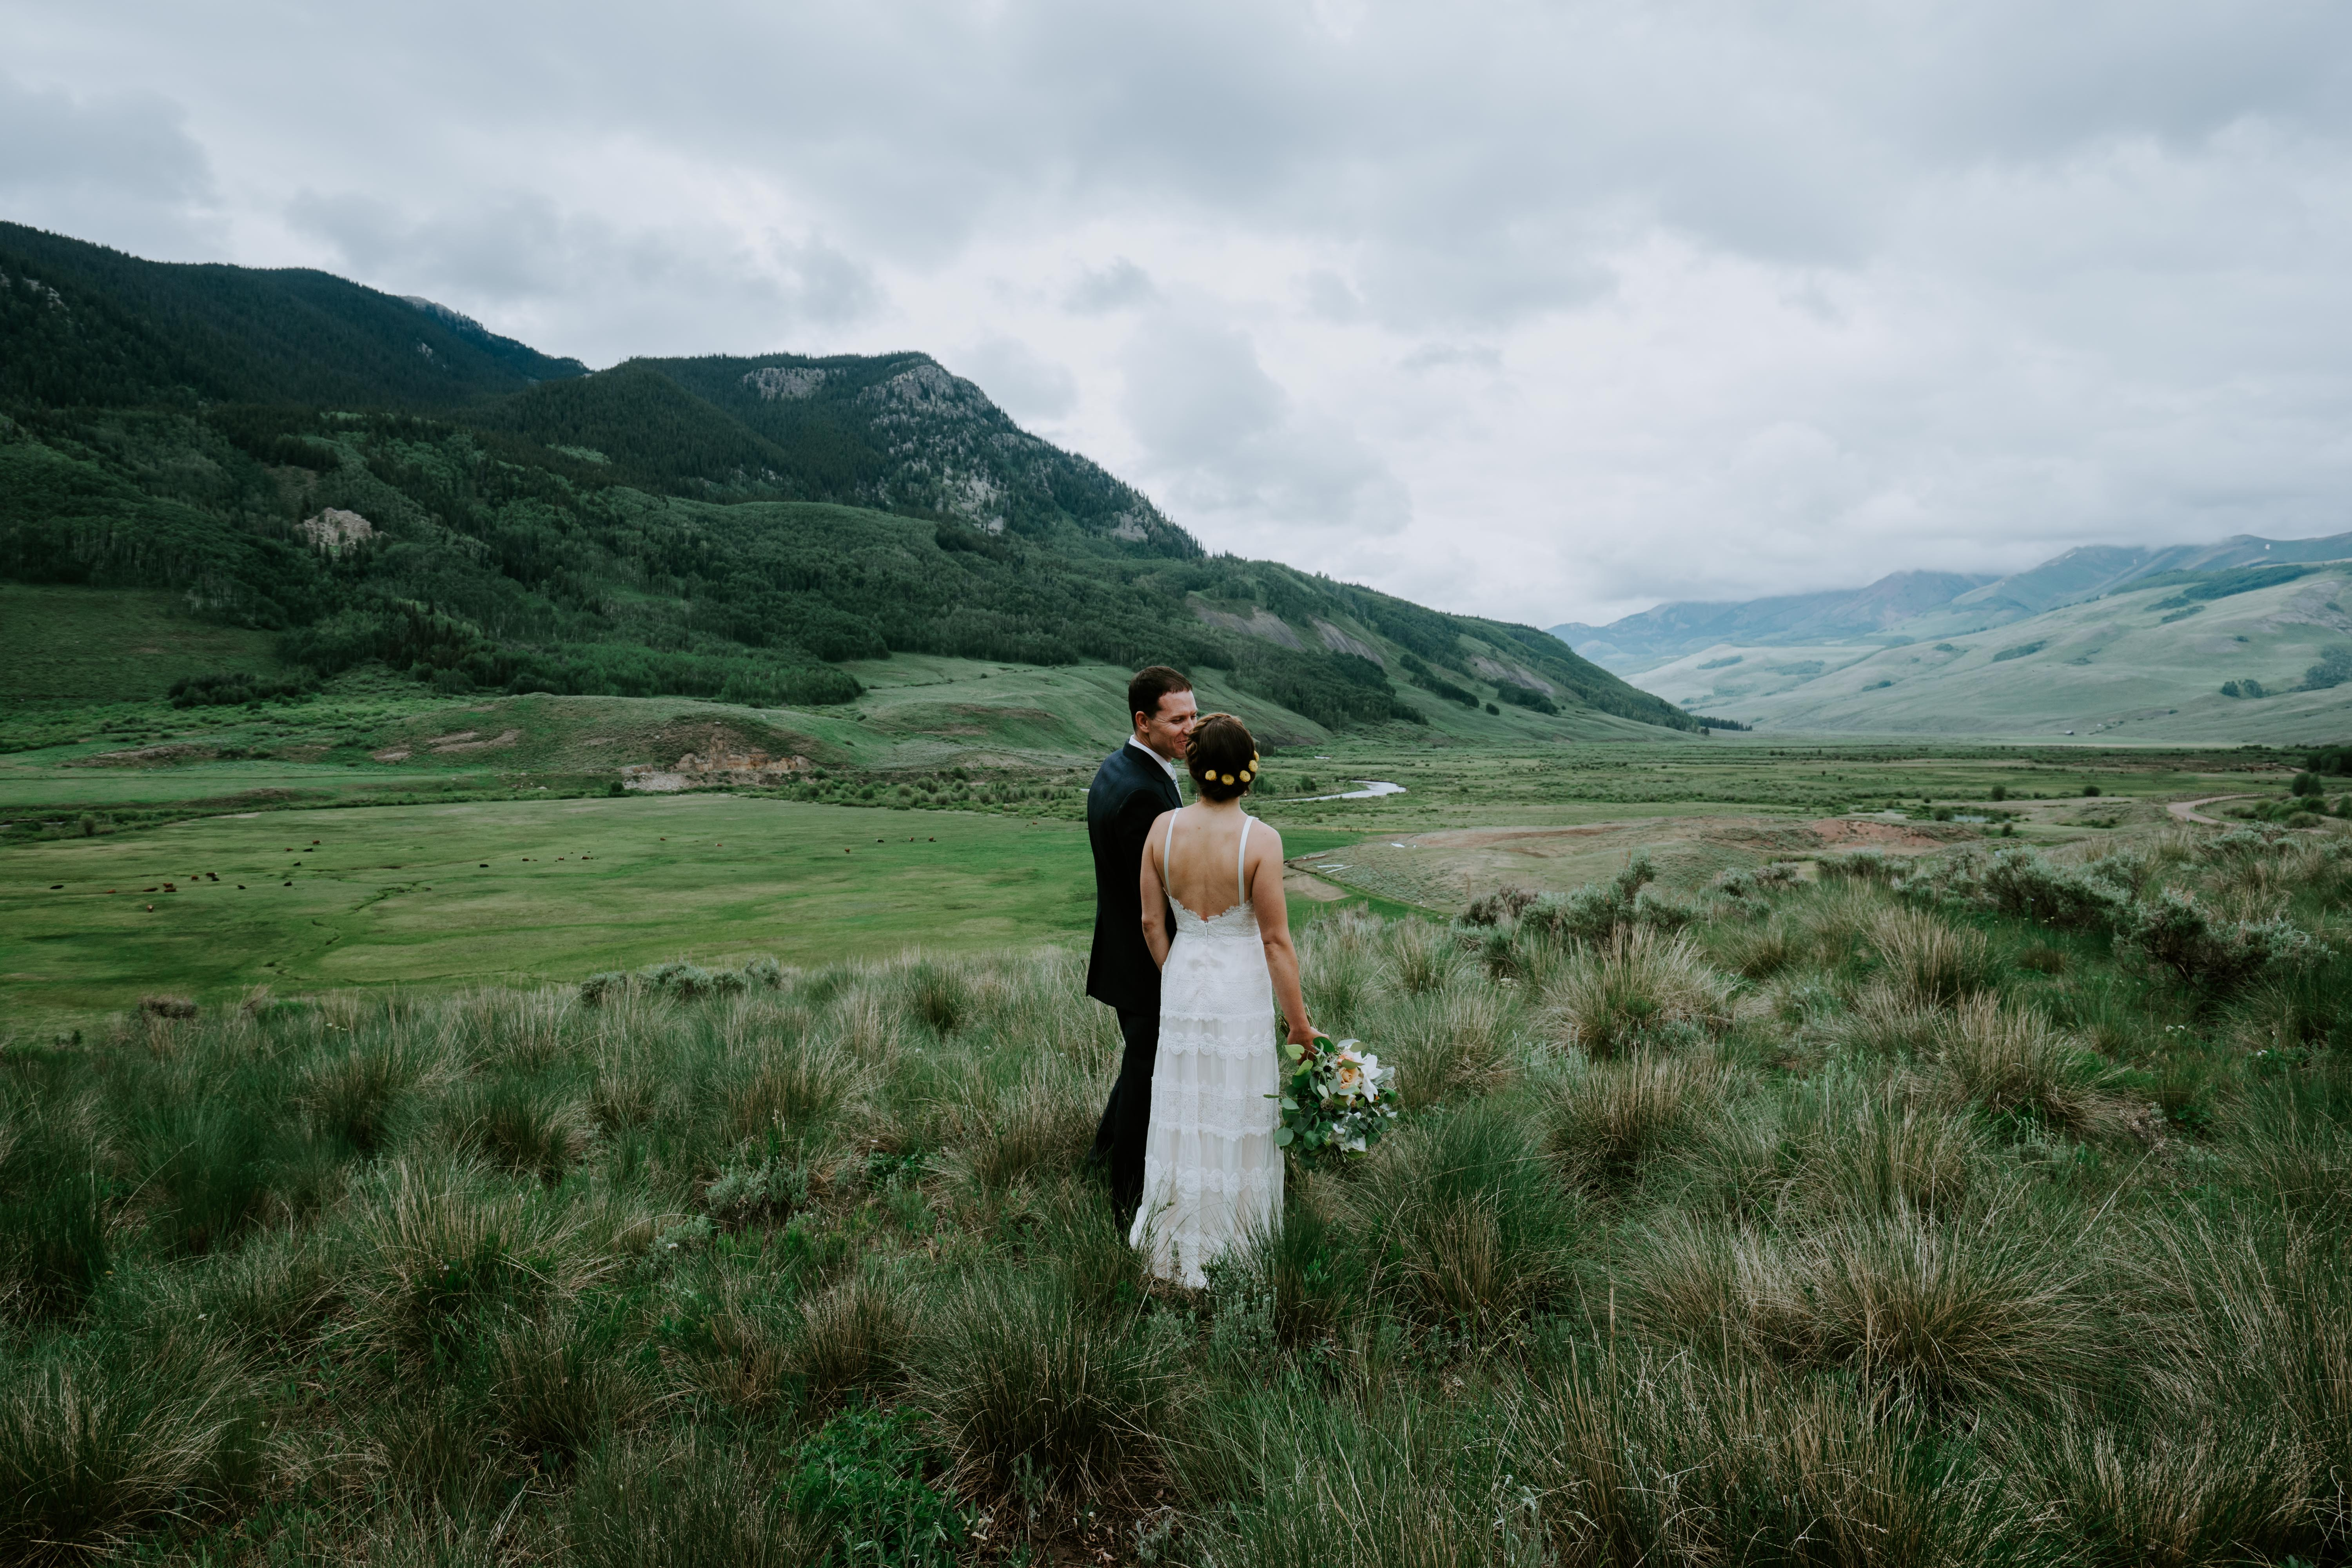 Laura_Alexe_Wedding_Crested_Butte_MegONeillPhotography__180616_42